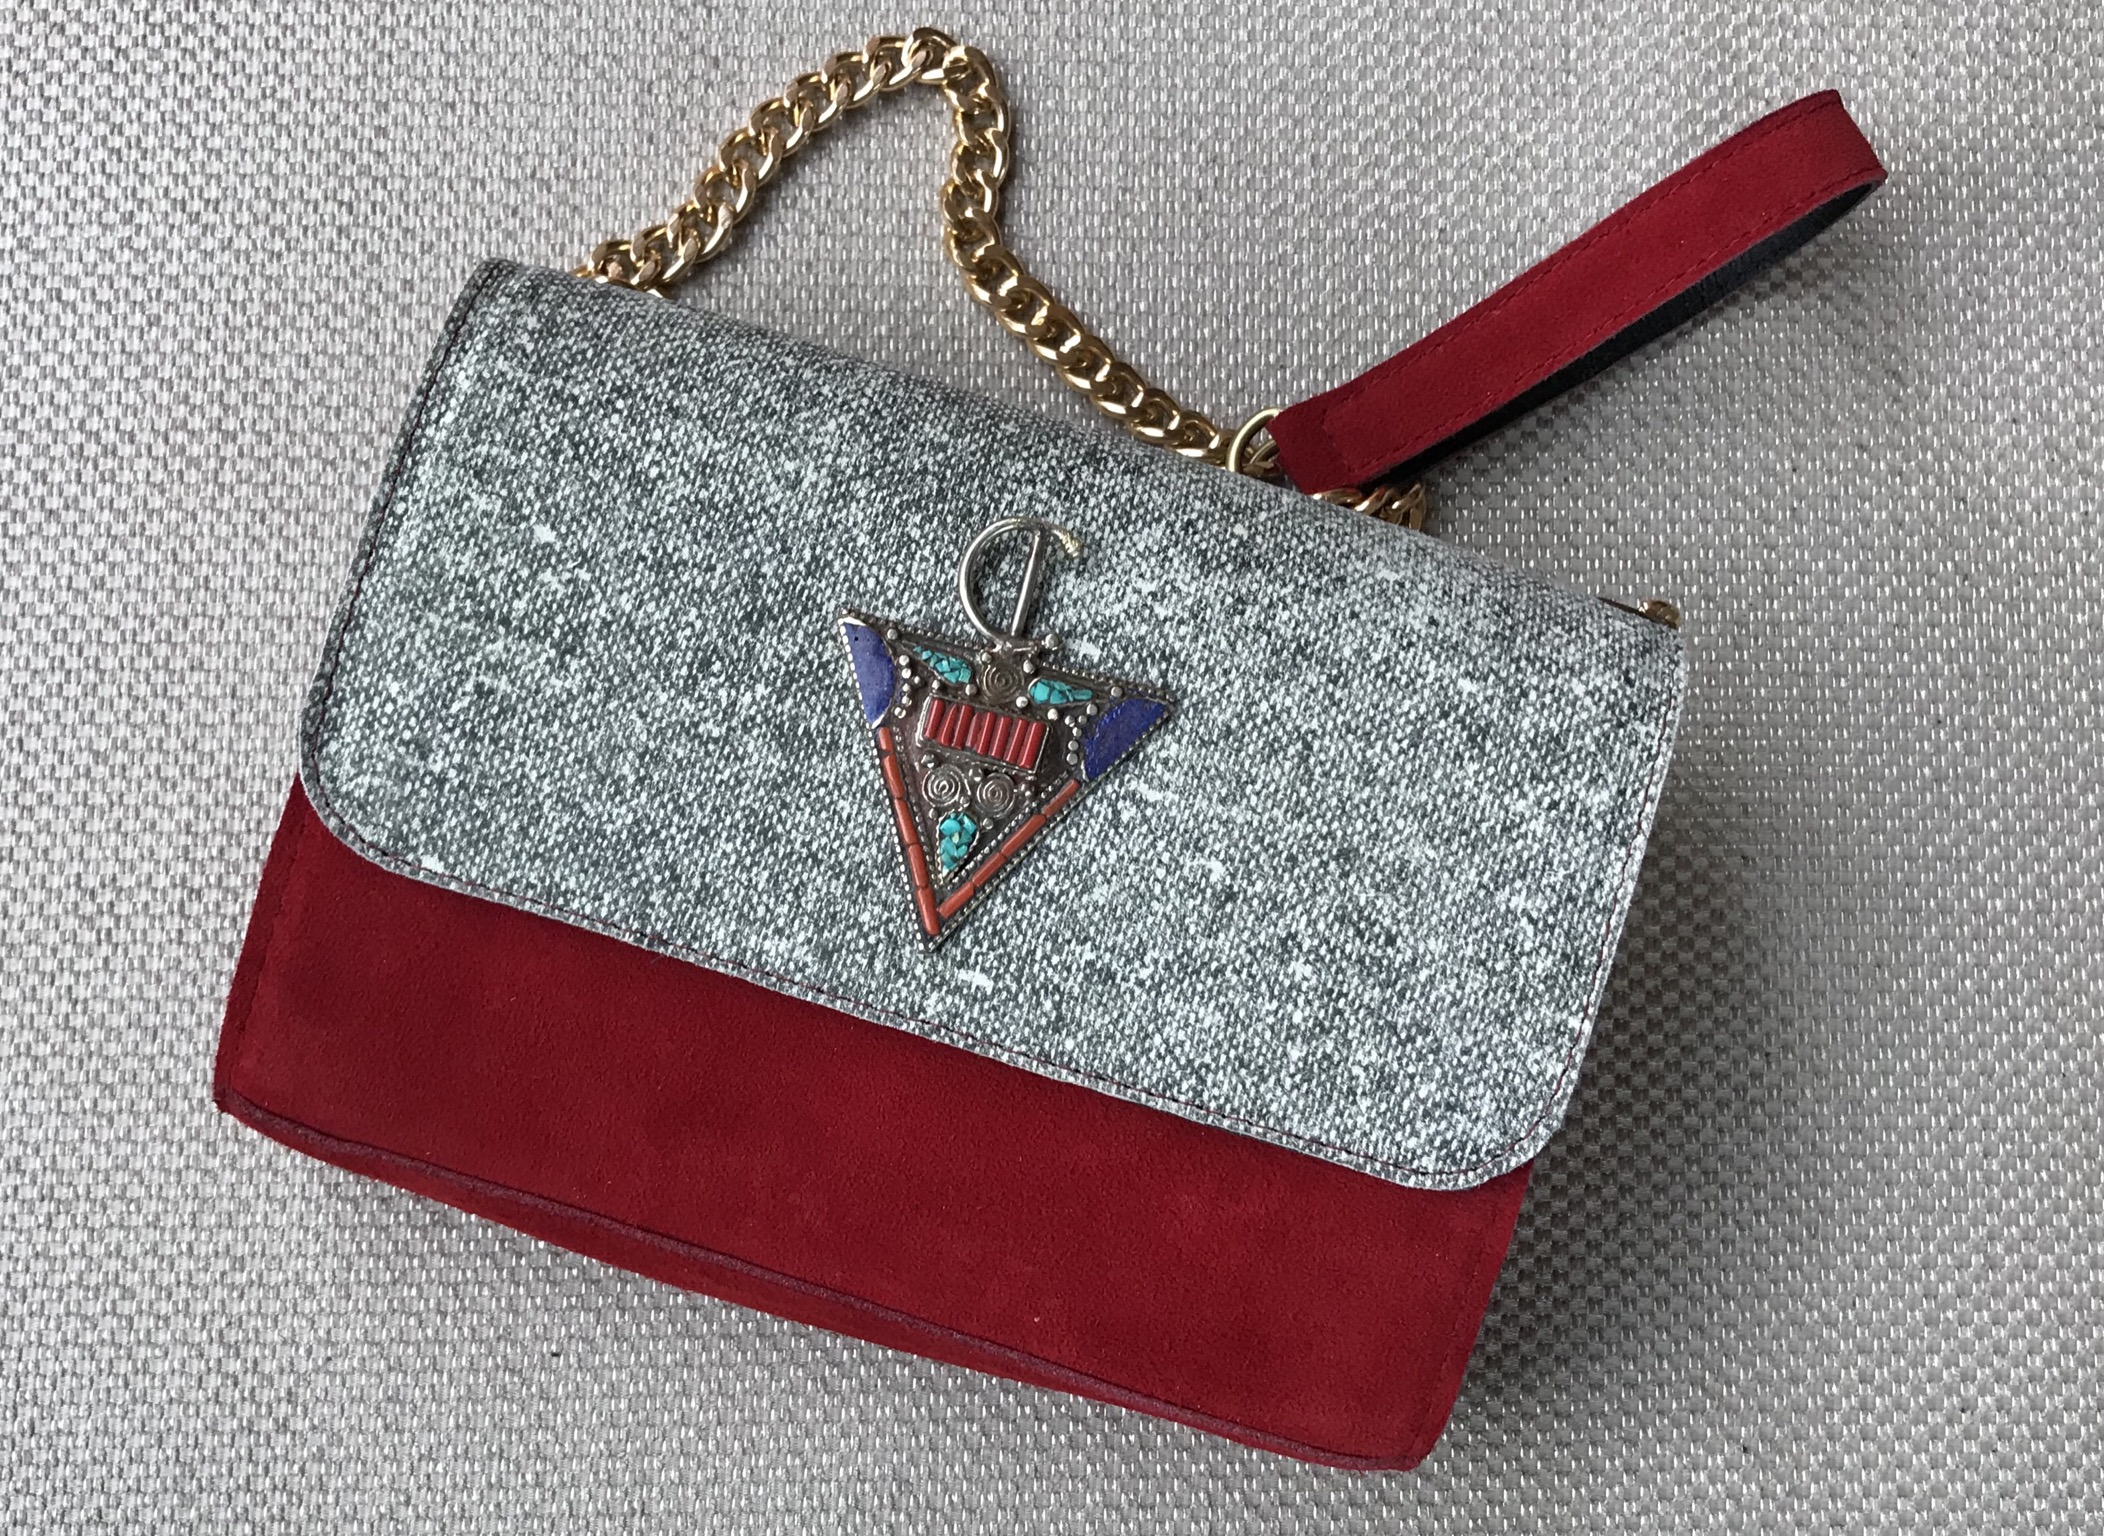 Jewelry bag suede leather & leather red grey